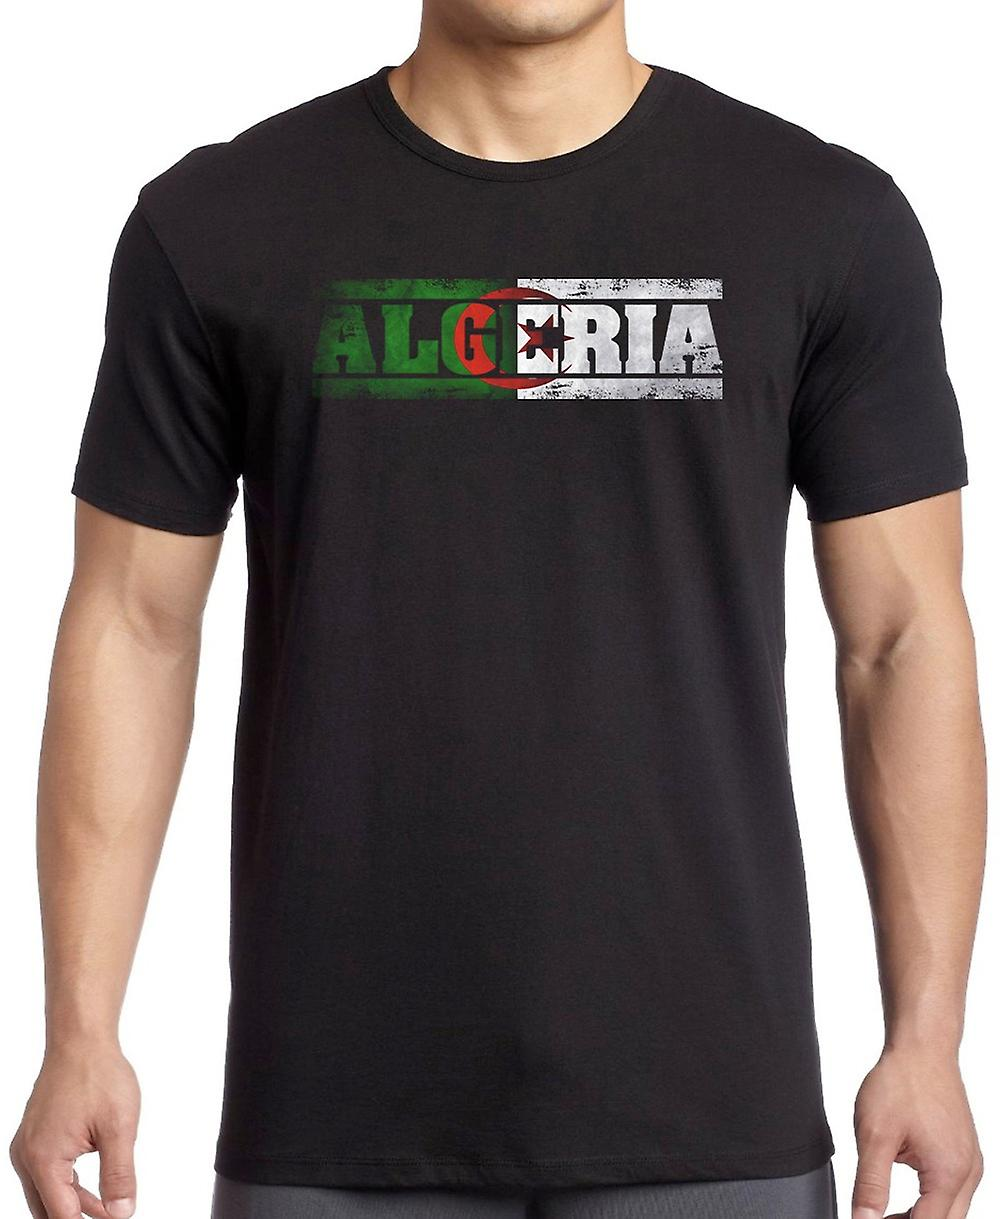 Algerian Algeria Flag - Words T Shirt